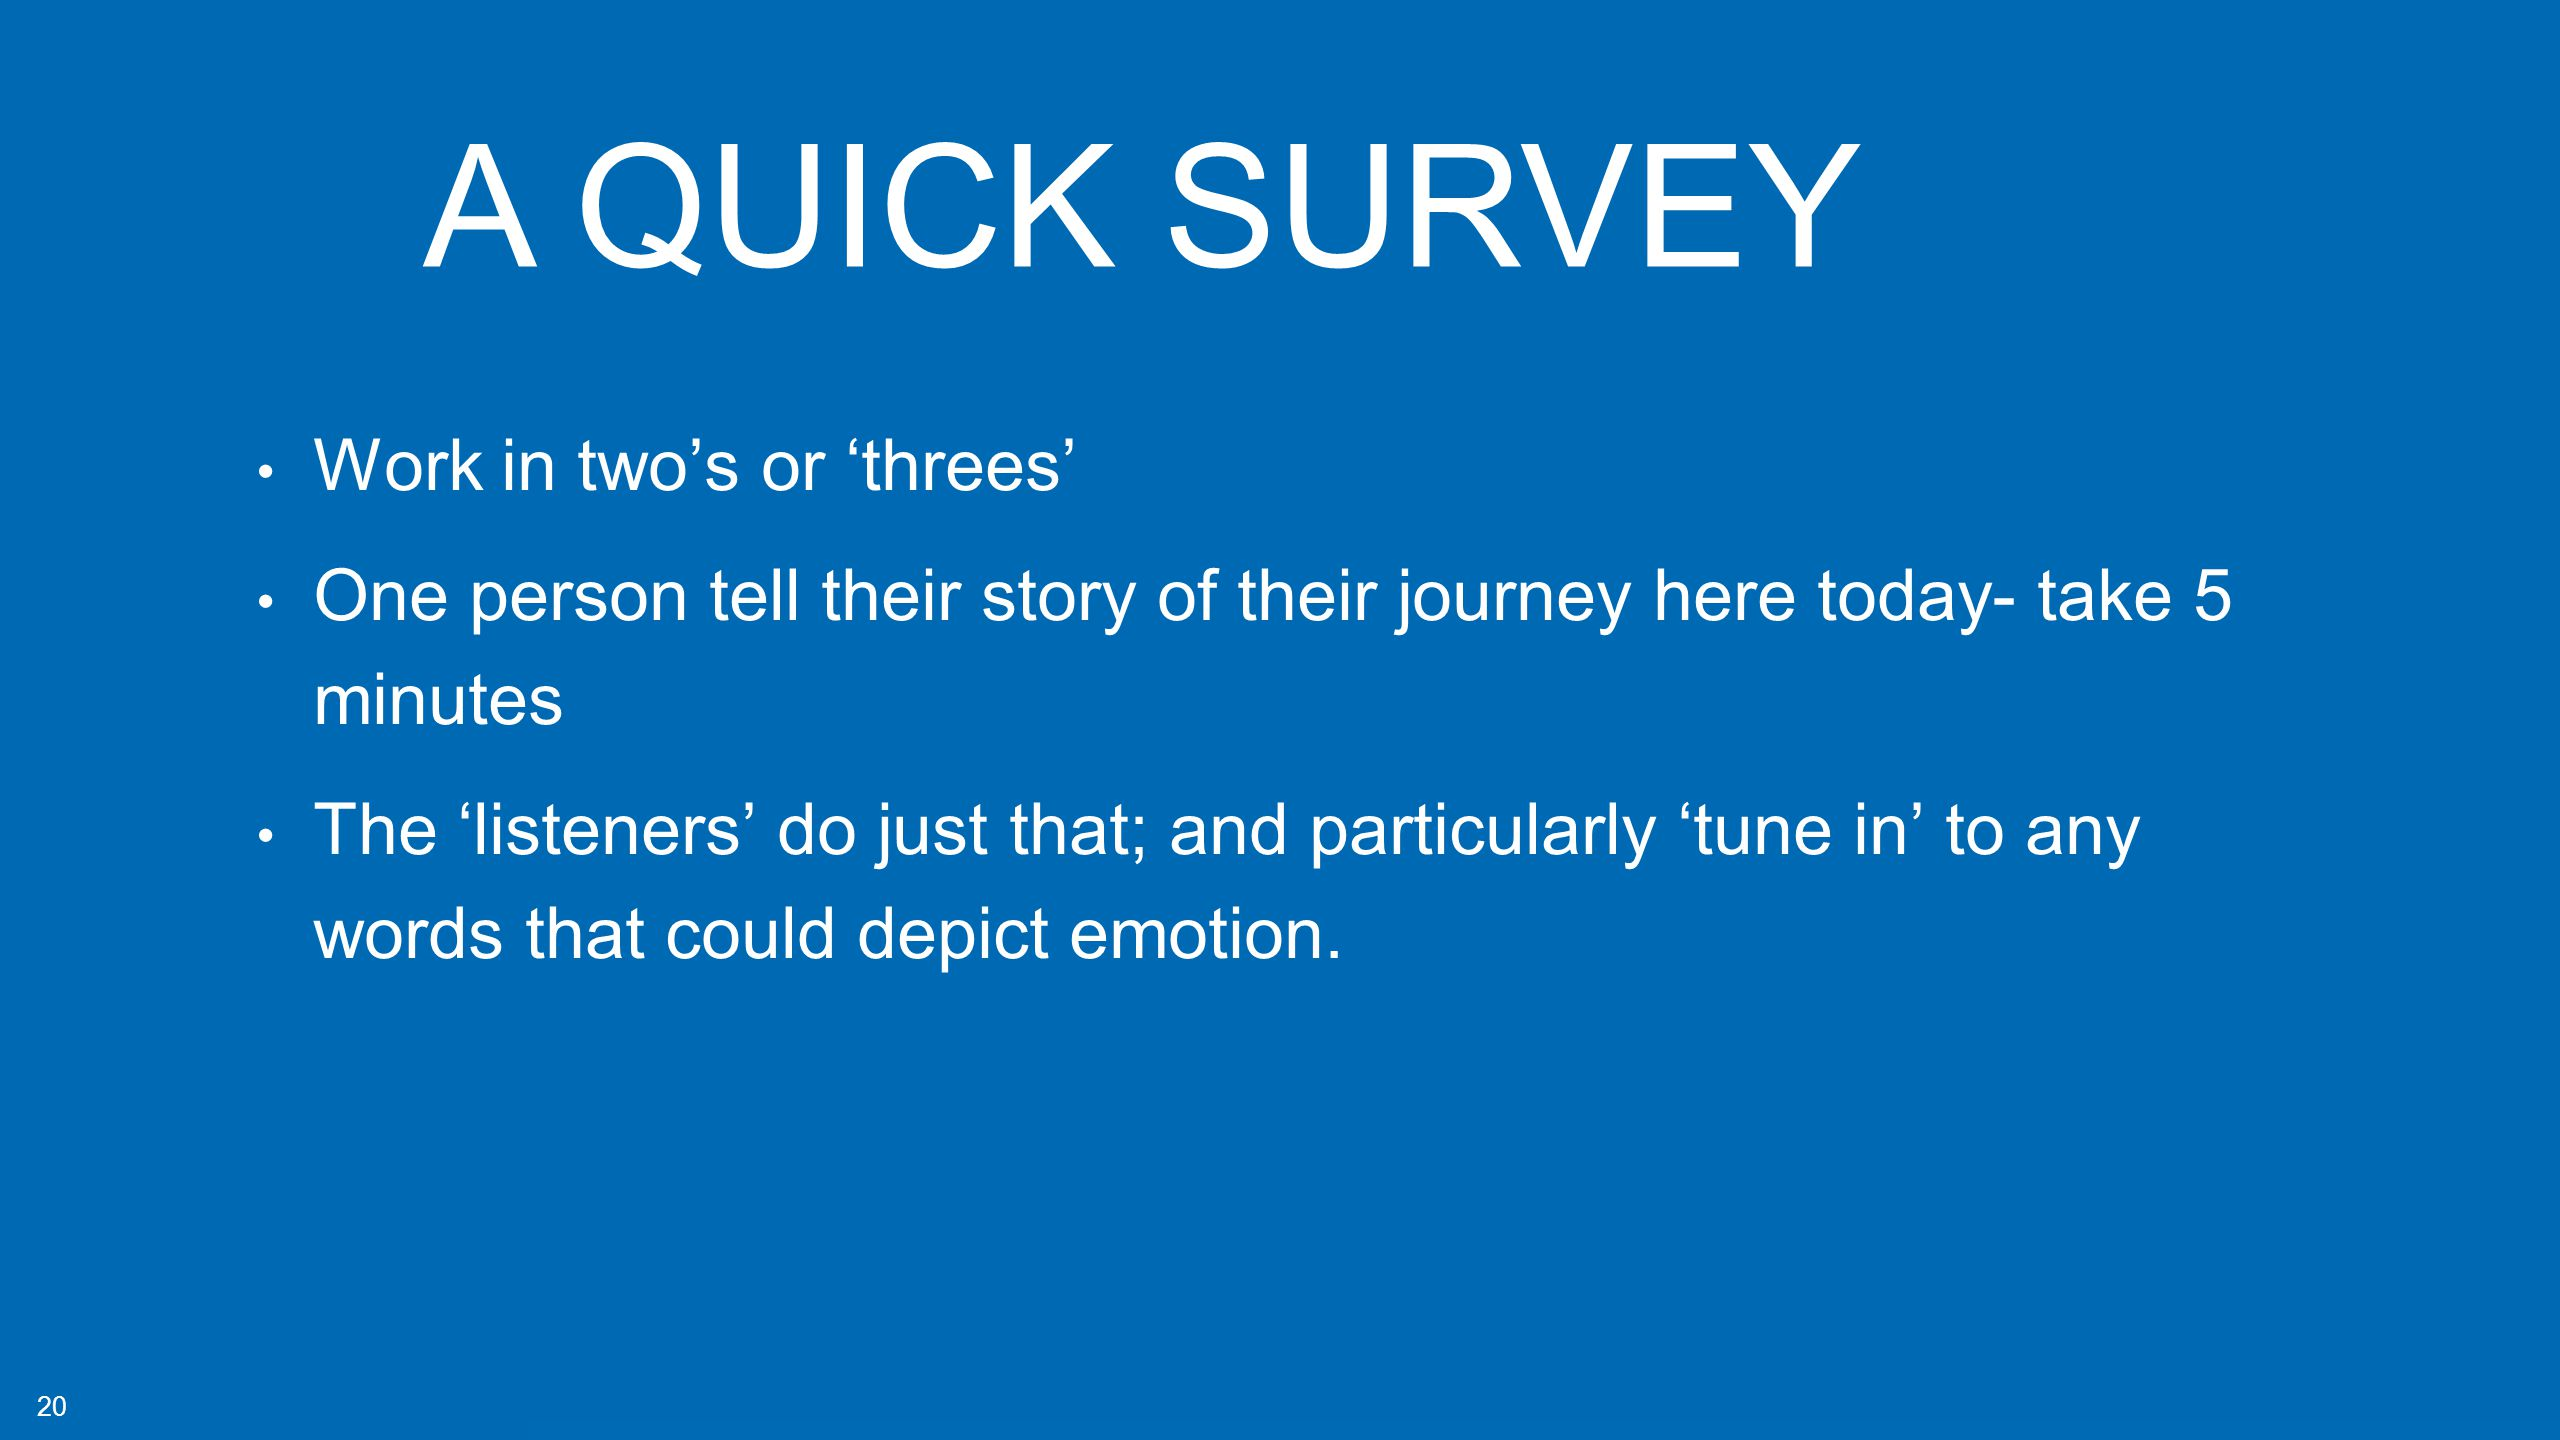 20 Work in two's or 'threes' One person tell their story of their journey here today- take 5 minutes The 'listeners' do just that; and particularly 'tune in' to any words that could depict emotion.